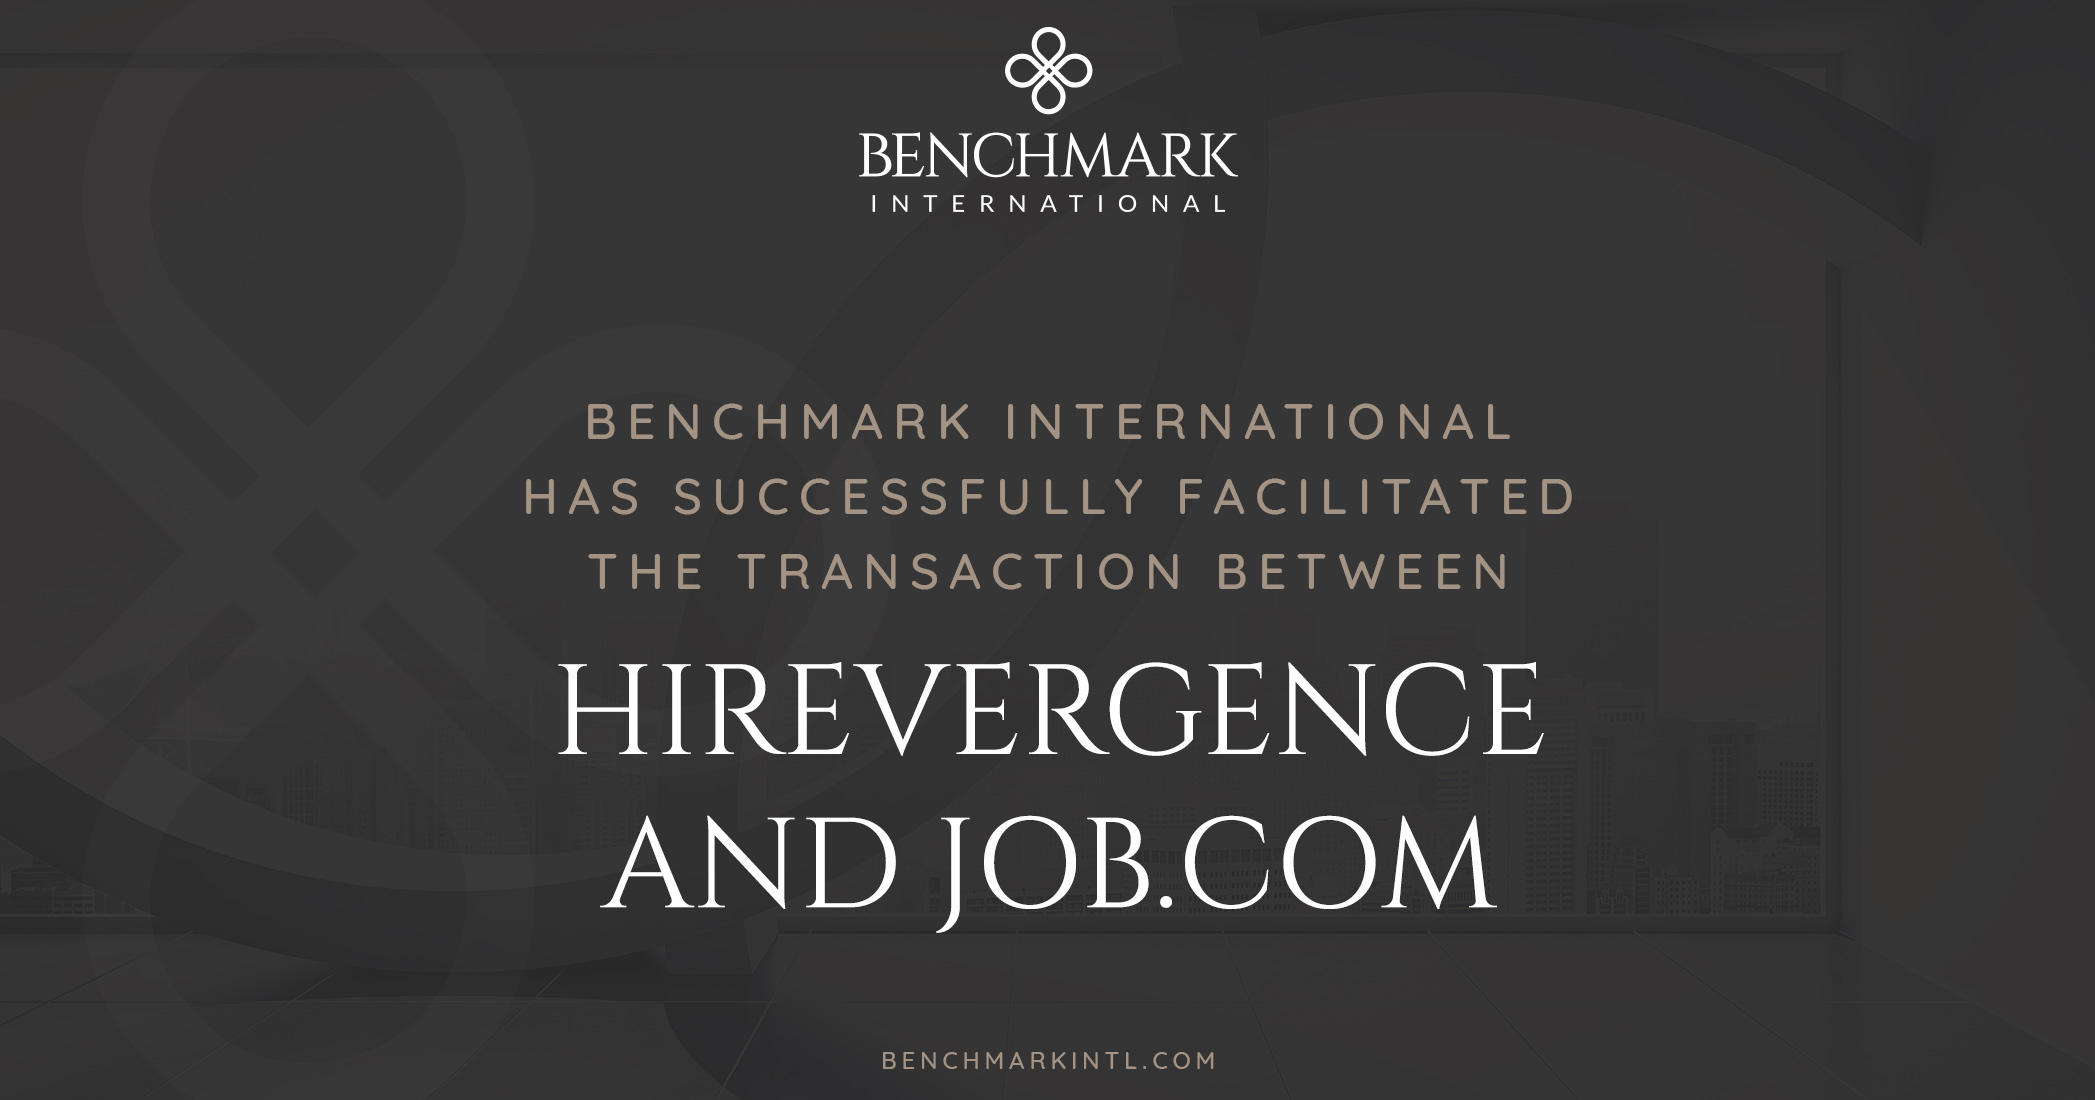 Benchmark International Successfully Facilitated the Transaction Between HireVergence LLC and Job.com